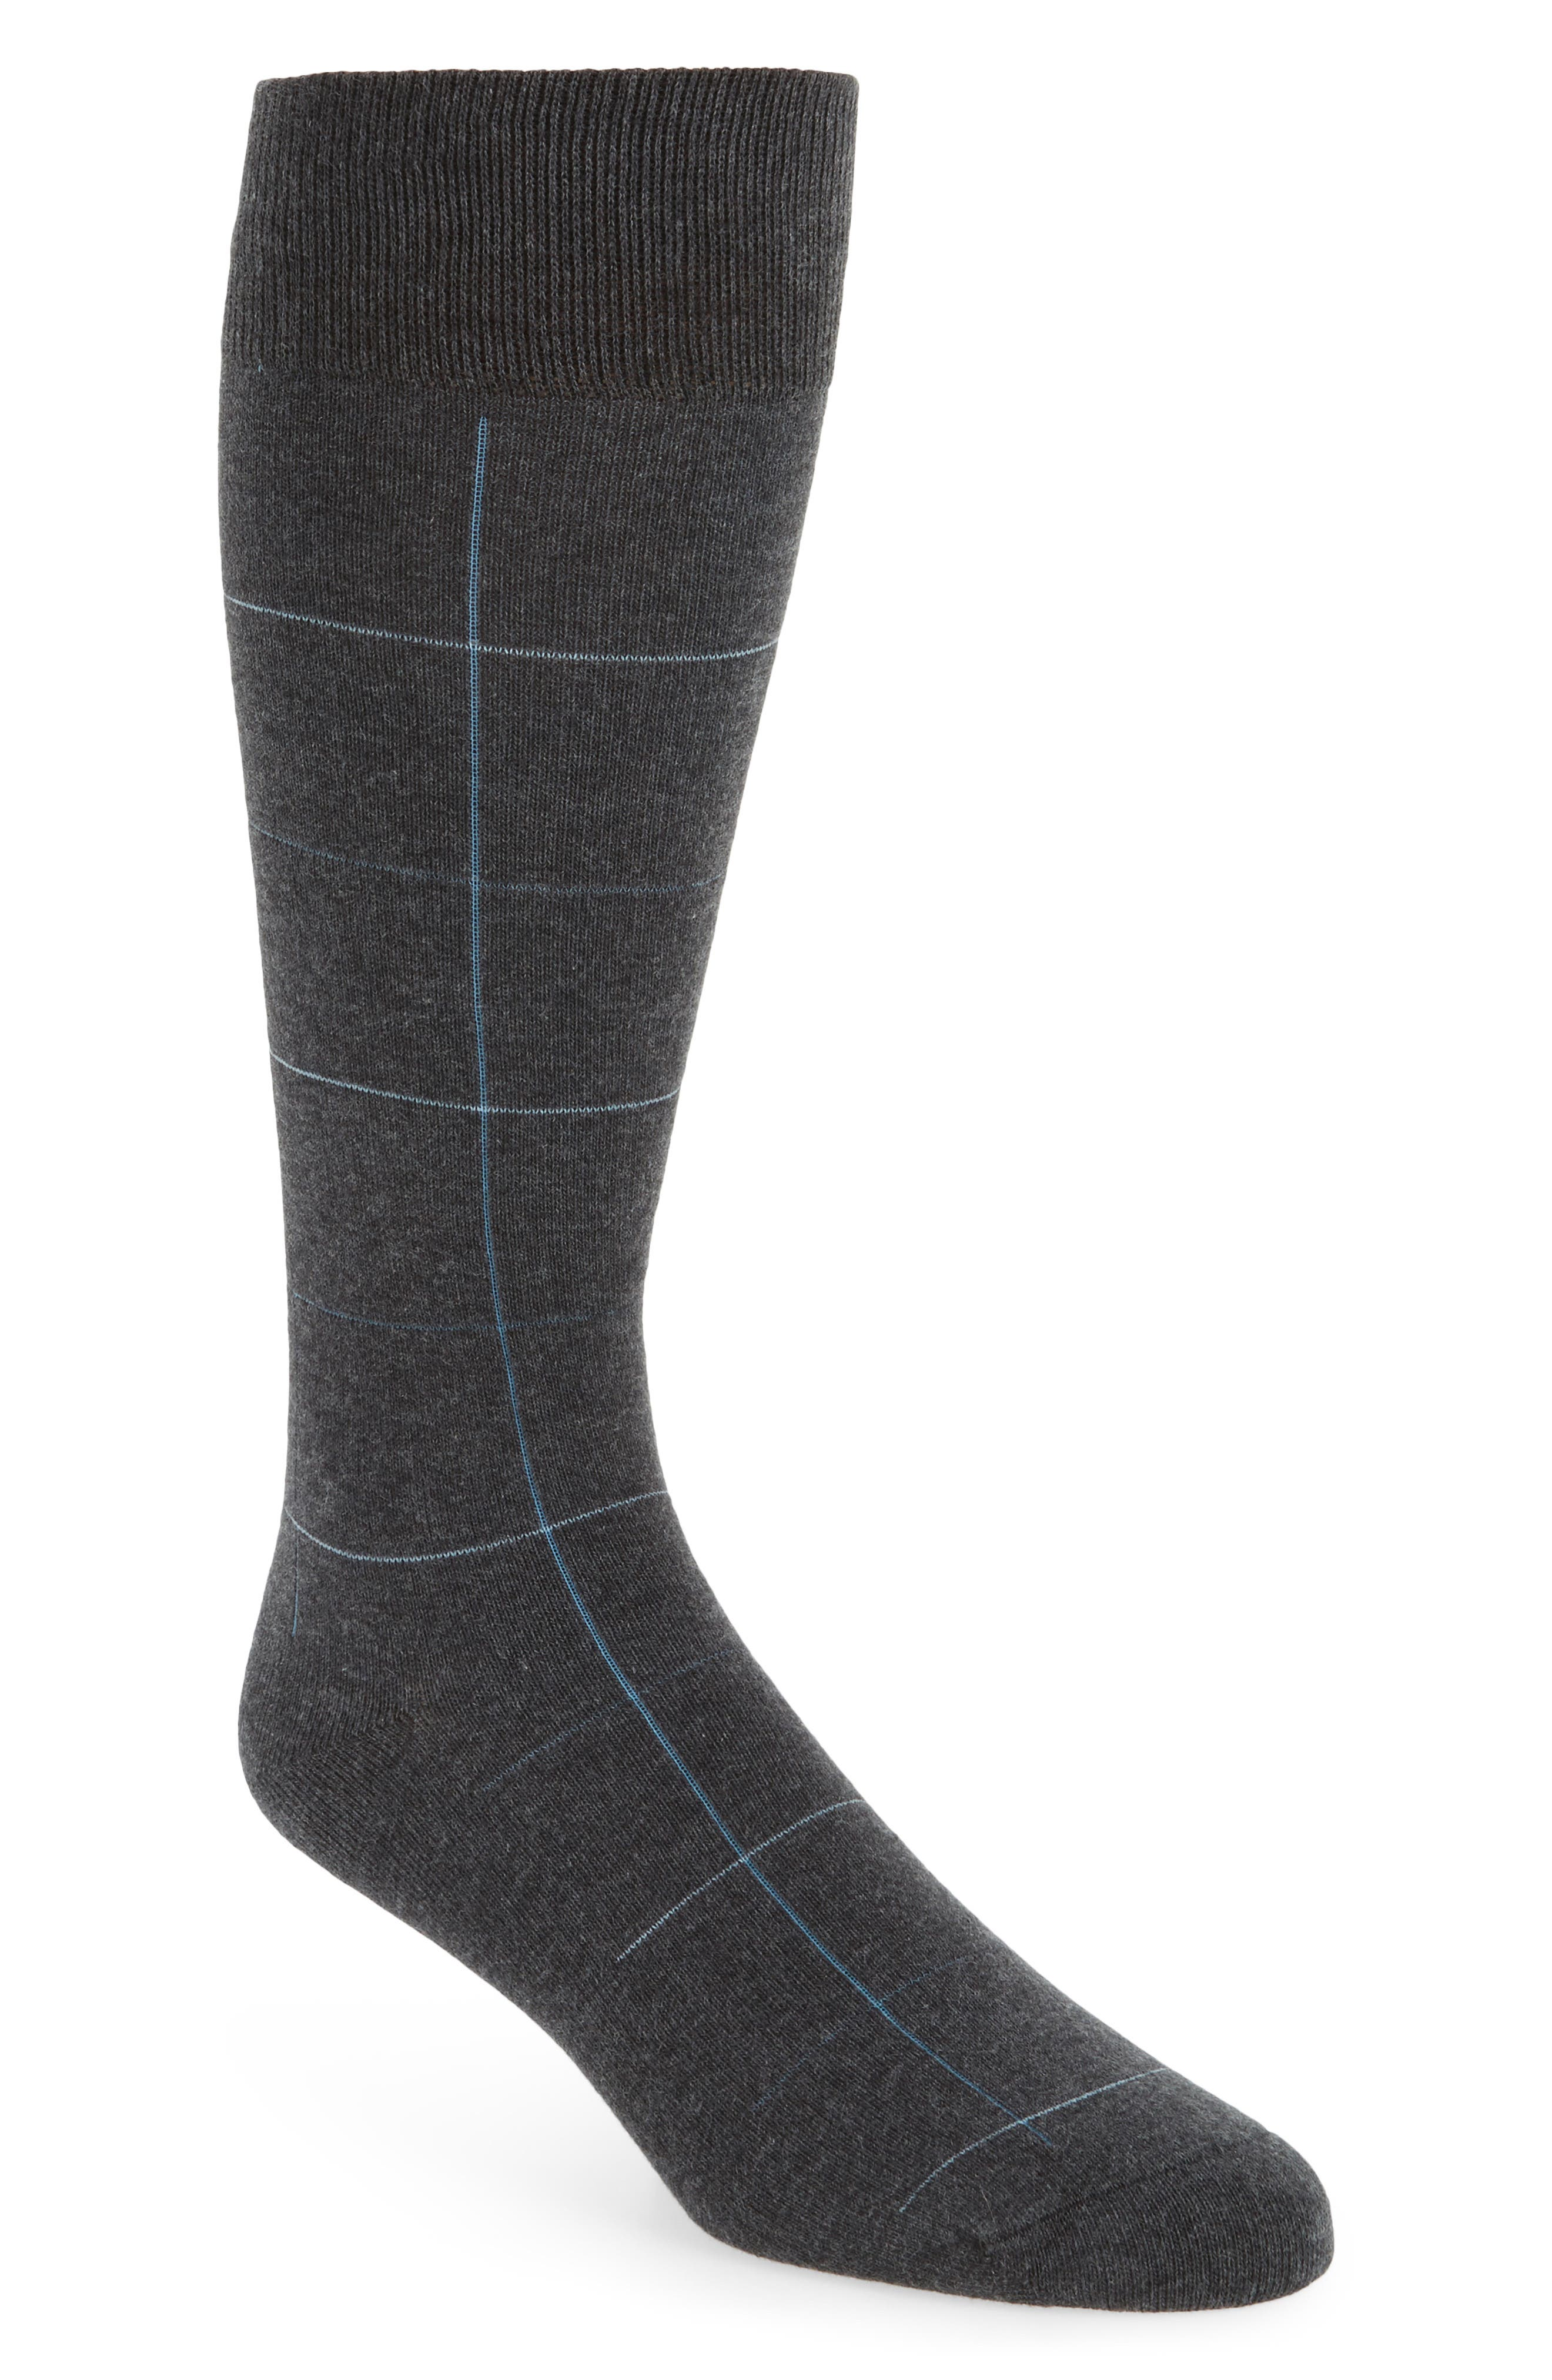 Alternate Image 1 Selected - Calibrate Check Socks (3 for $30)